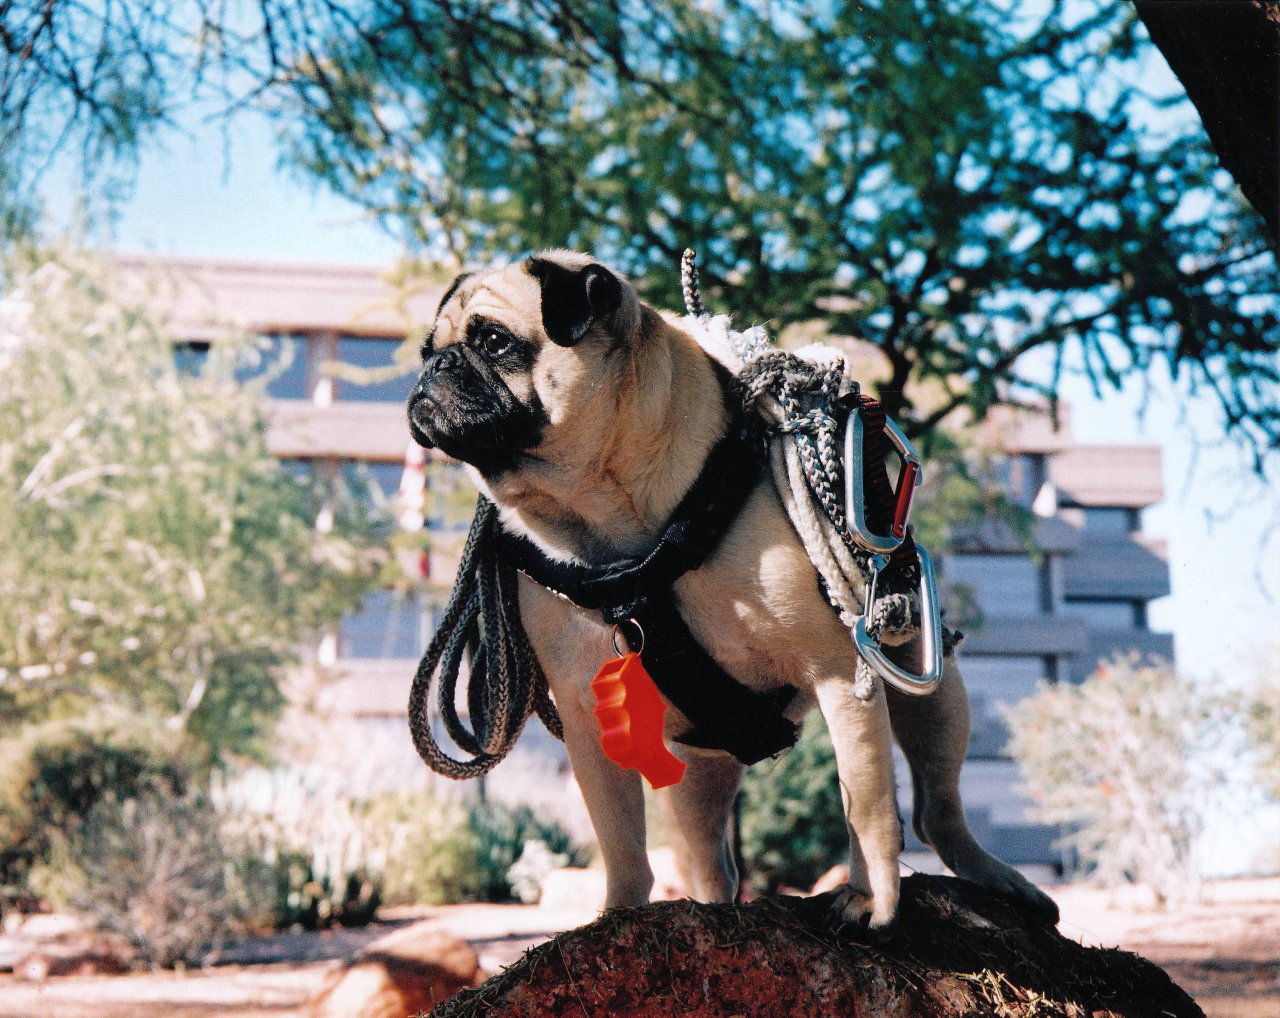 A picture from Miniture Mount Phoenix by Vinny the Pug